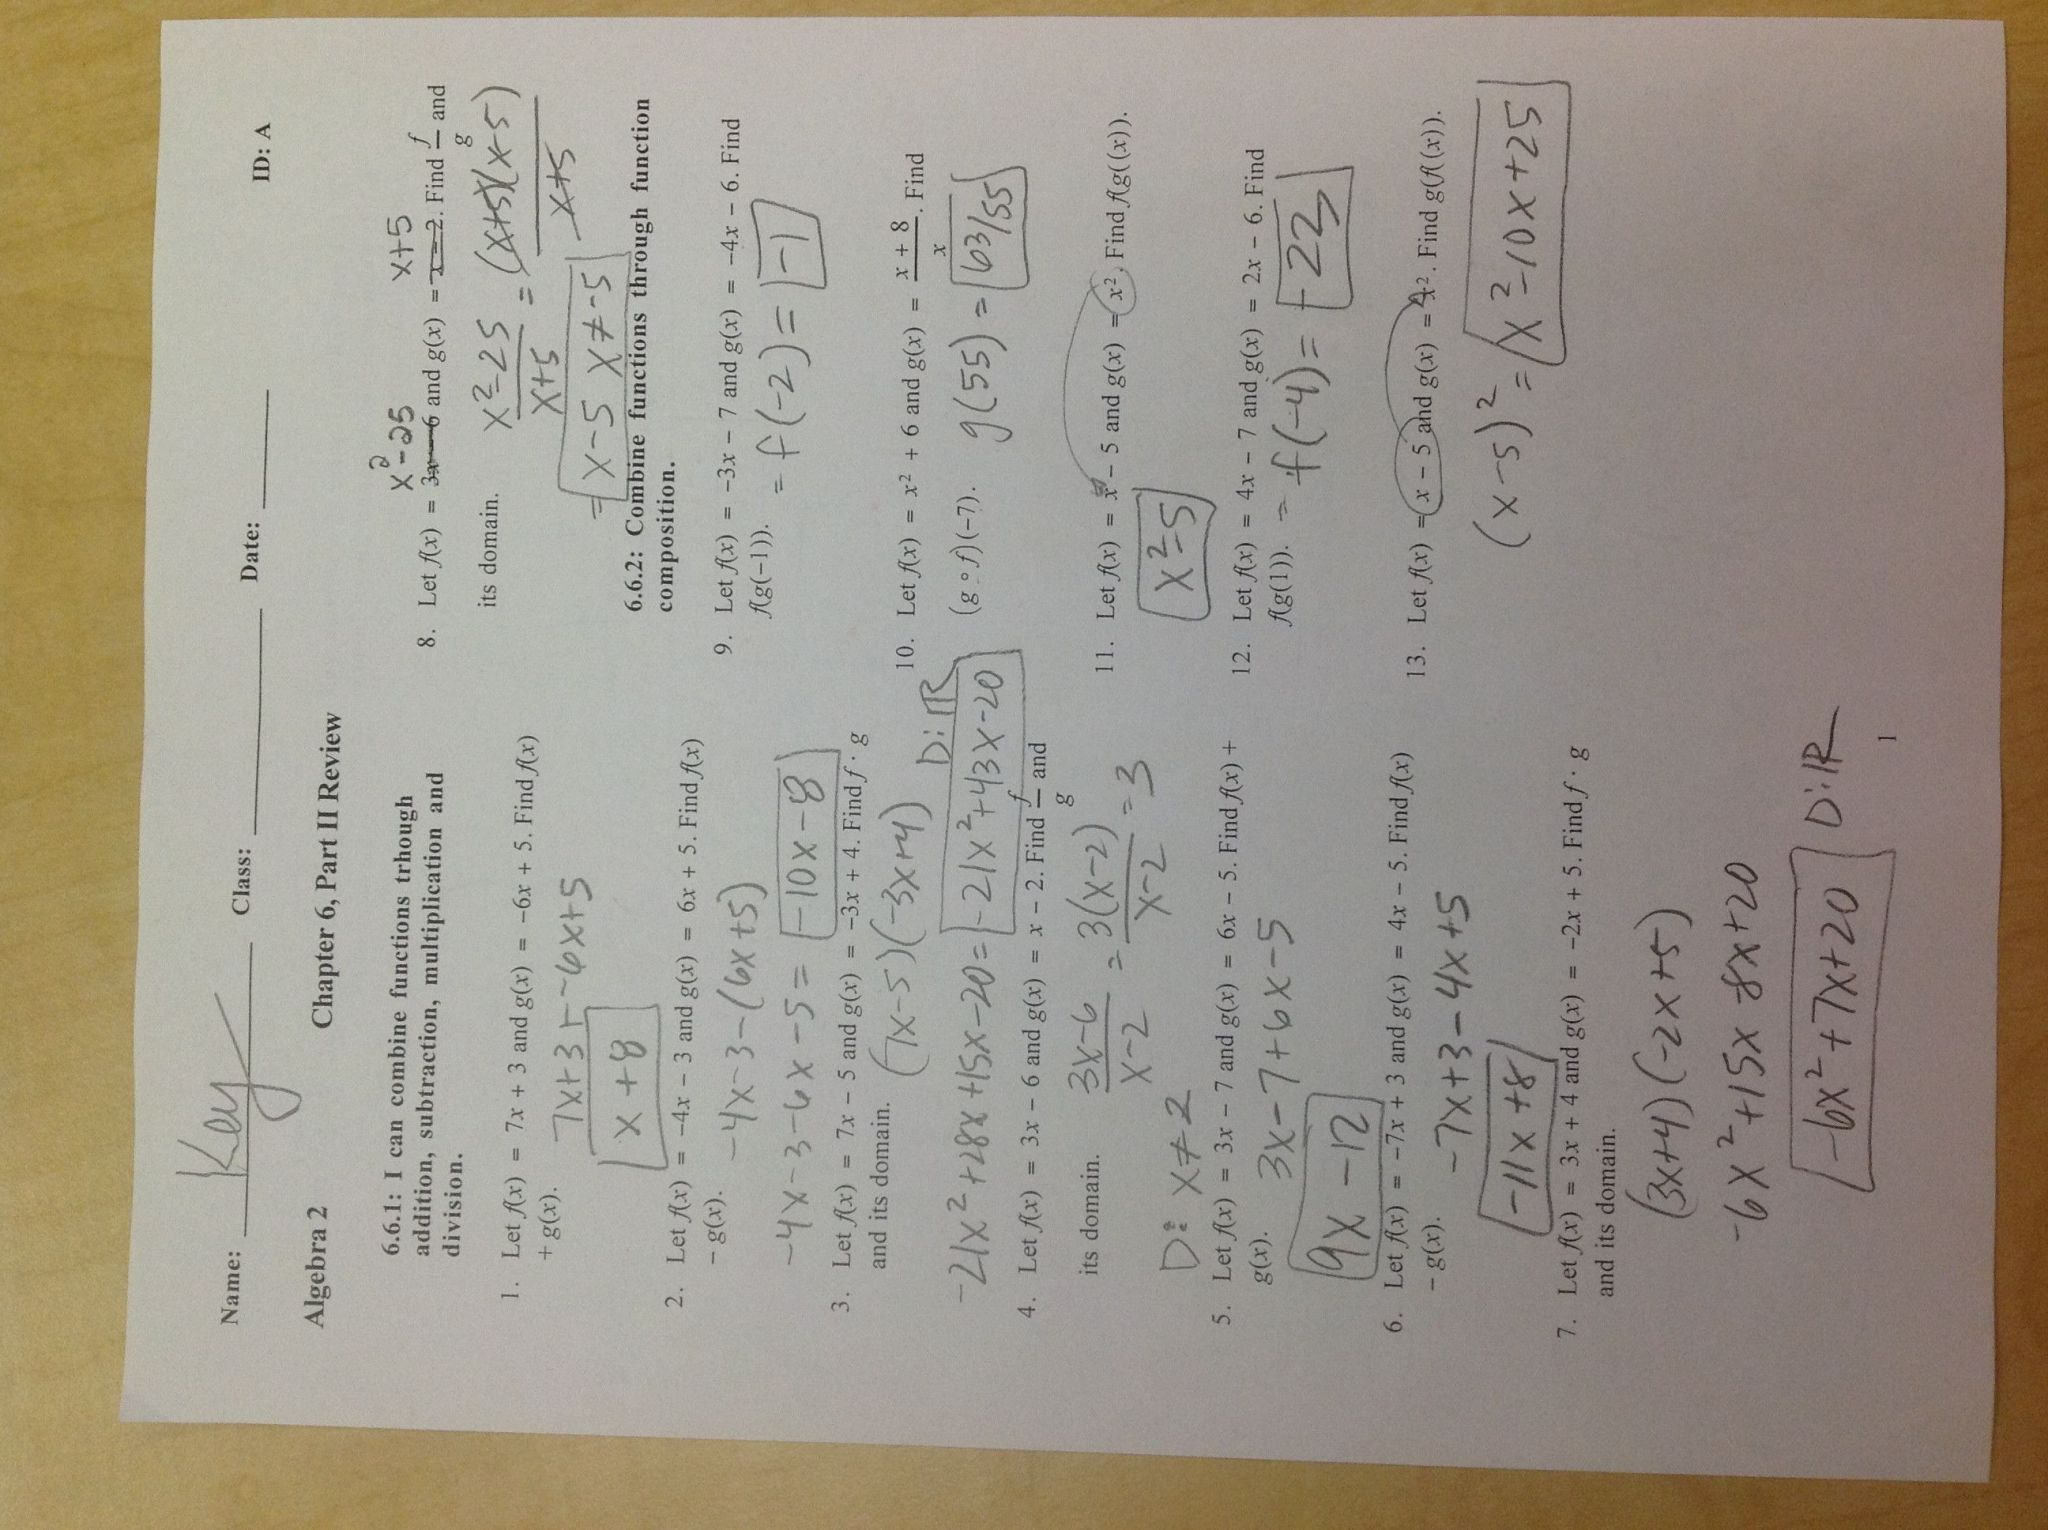 Algebra 2 Chapter 1 Worksheet